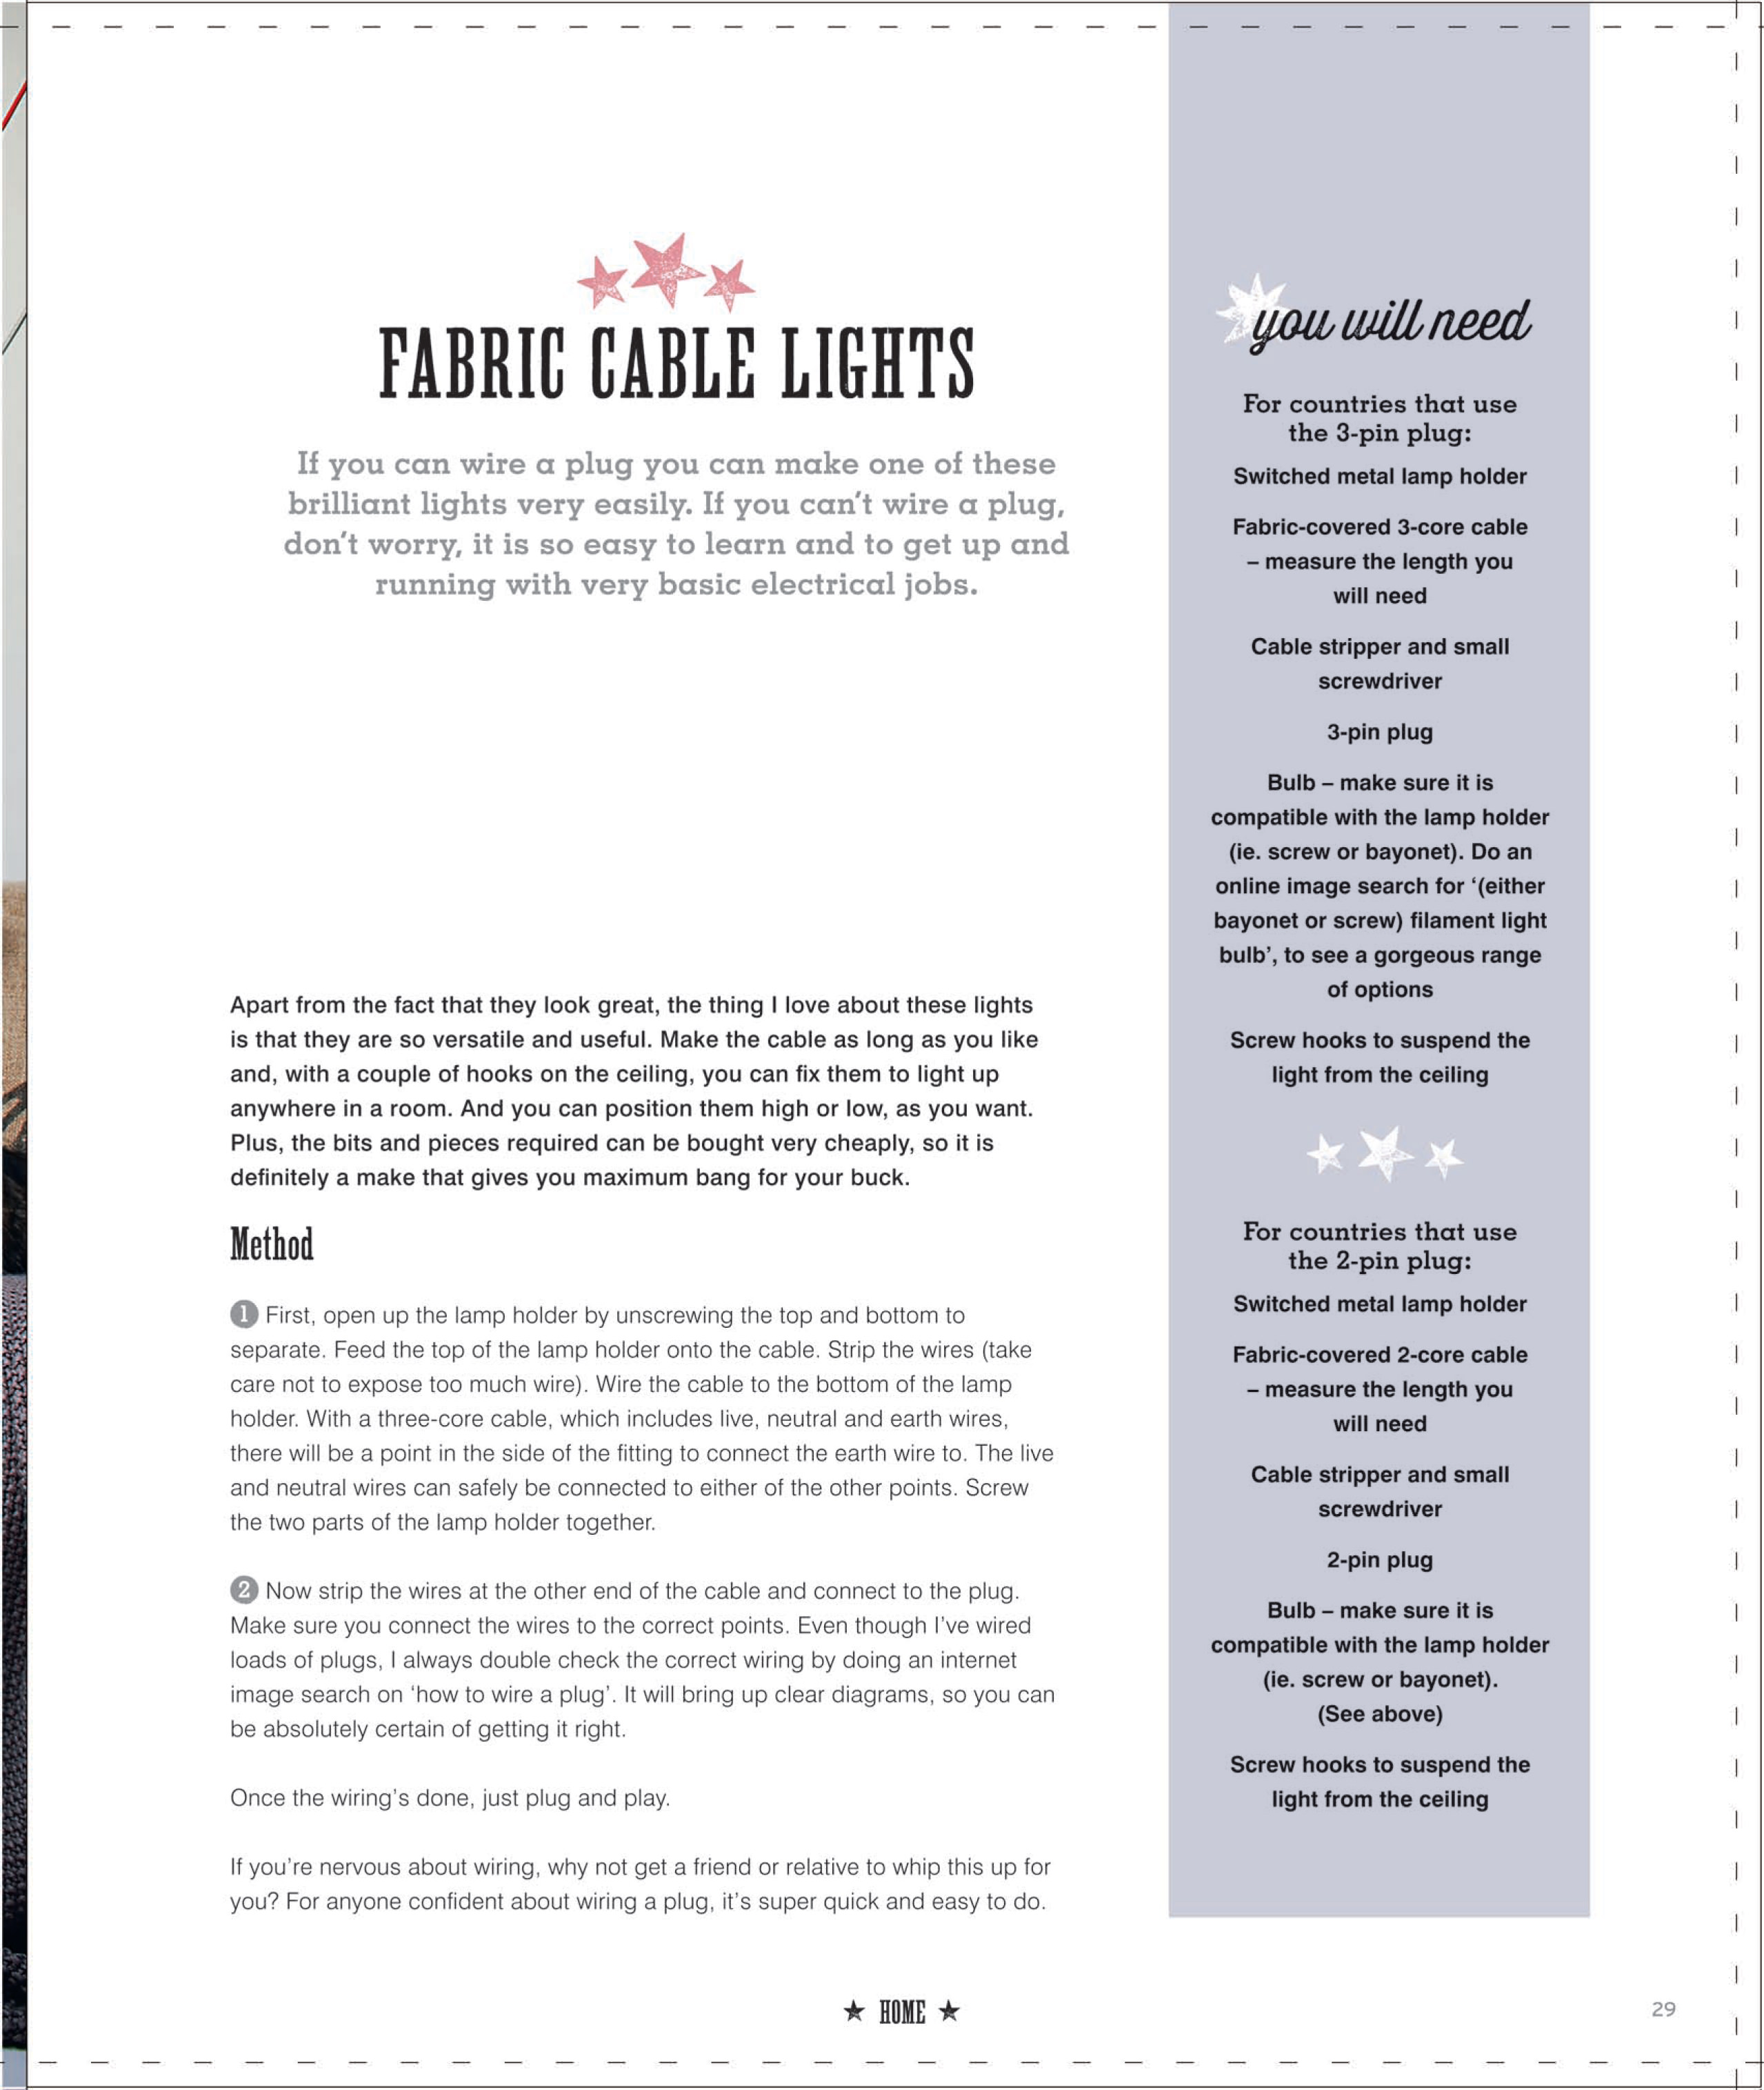 Fabric Cable Lights